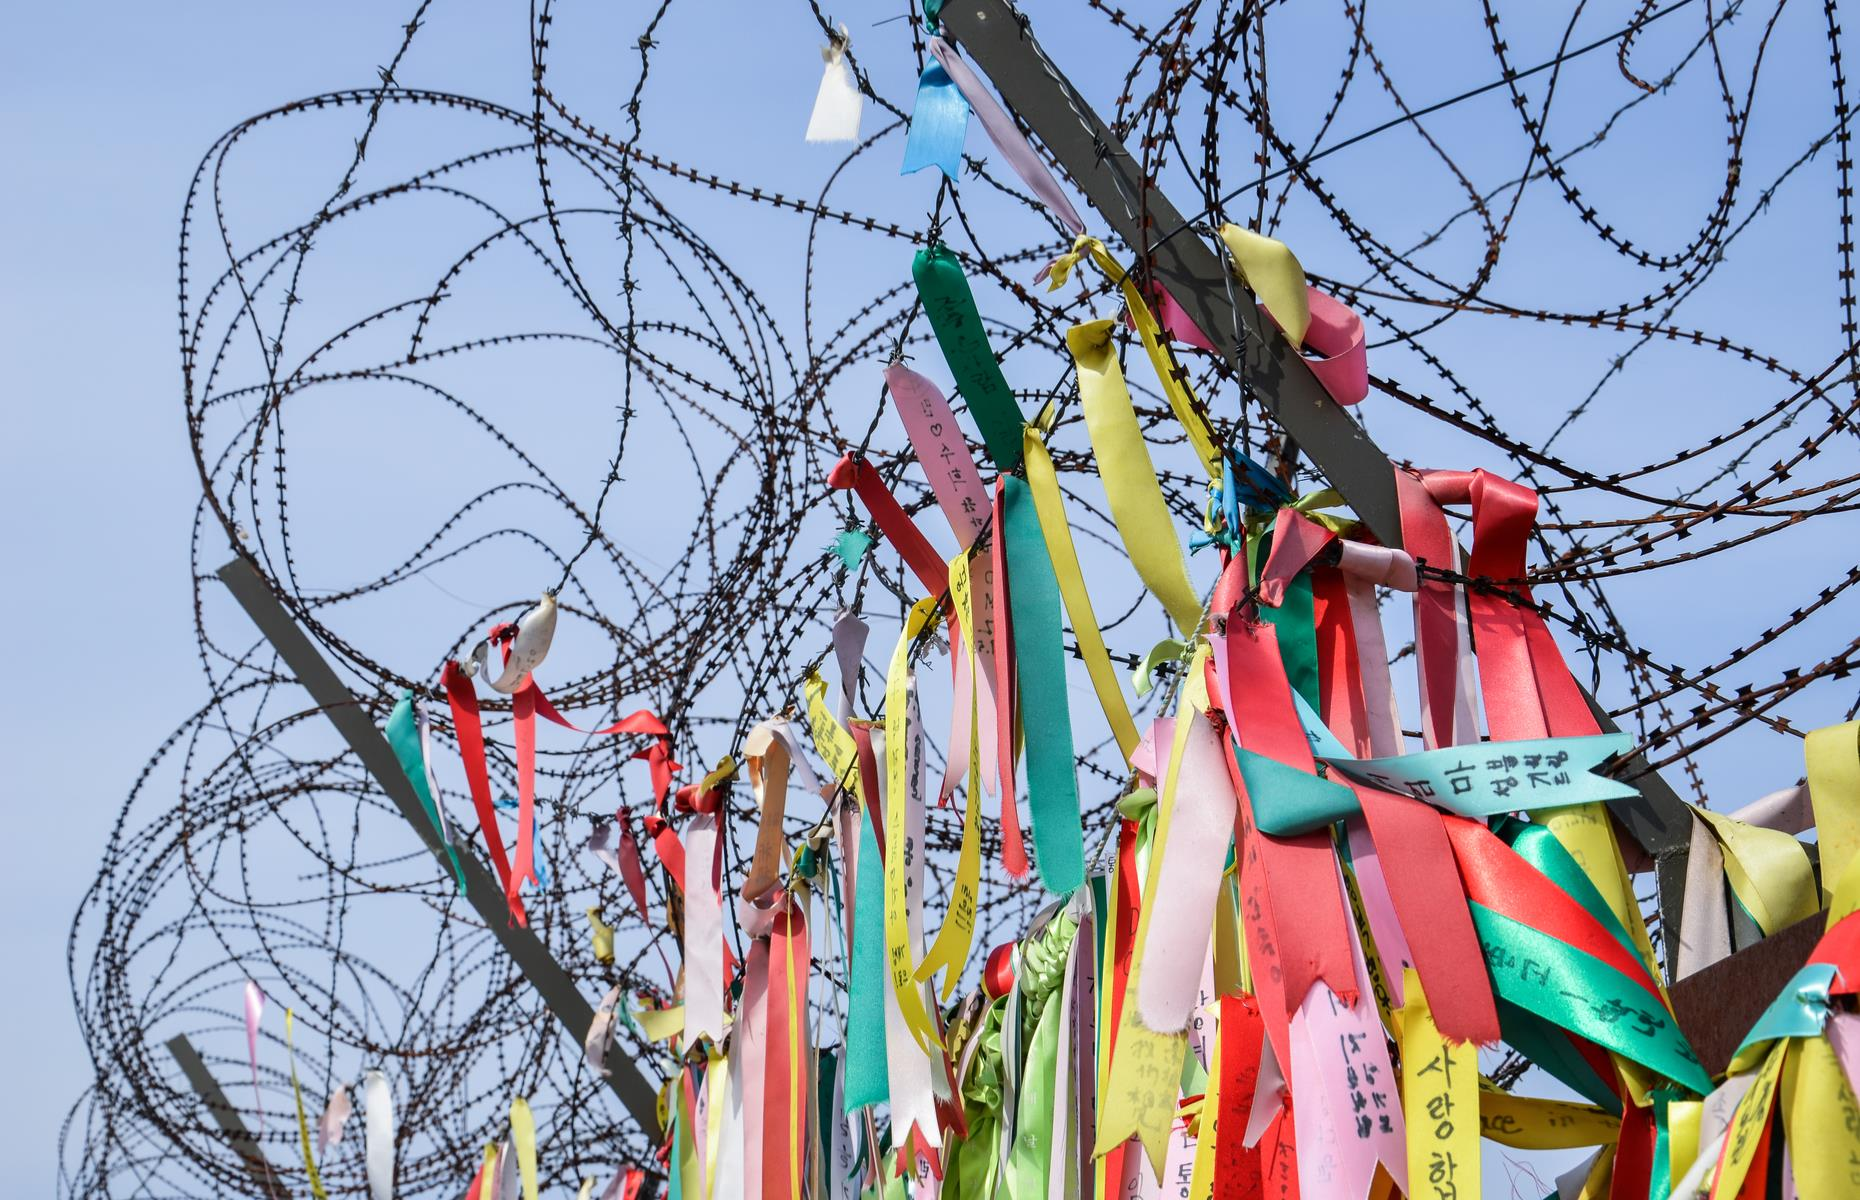 Slide 7 of 51: Civilians tied prayer ribbons to fences near the DMZ. Hopes for peace on the Korean peninsula have been rising since the latest summits between the countries' leaders and the USA.